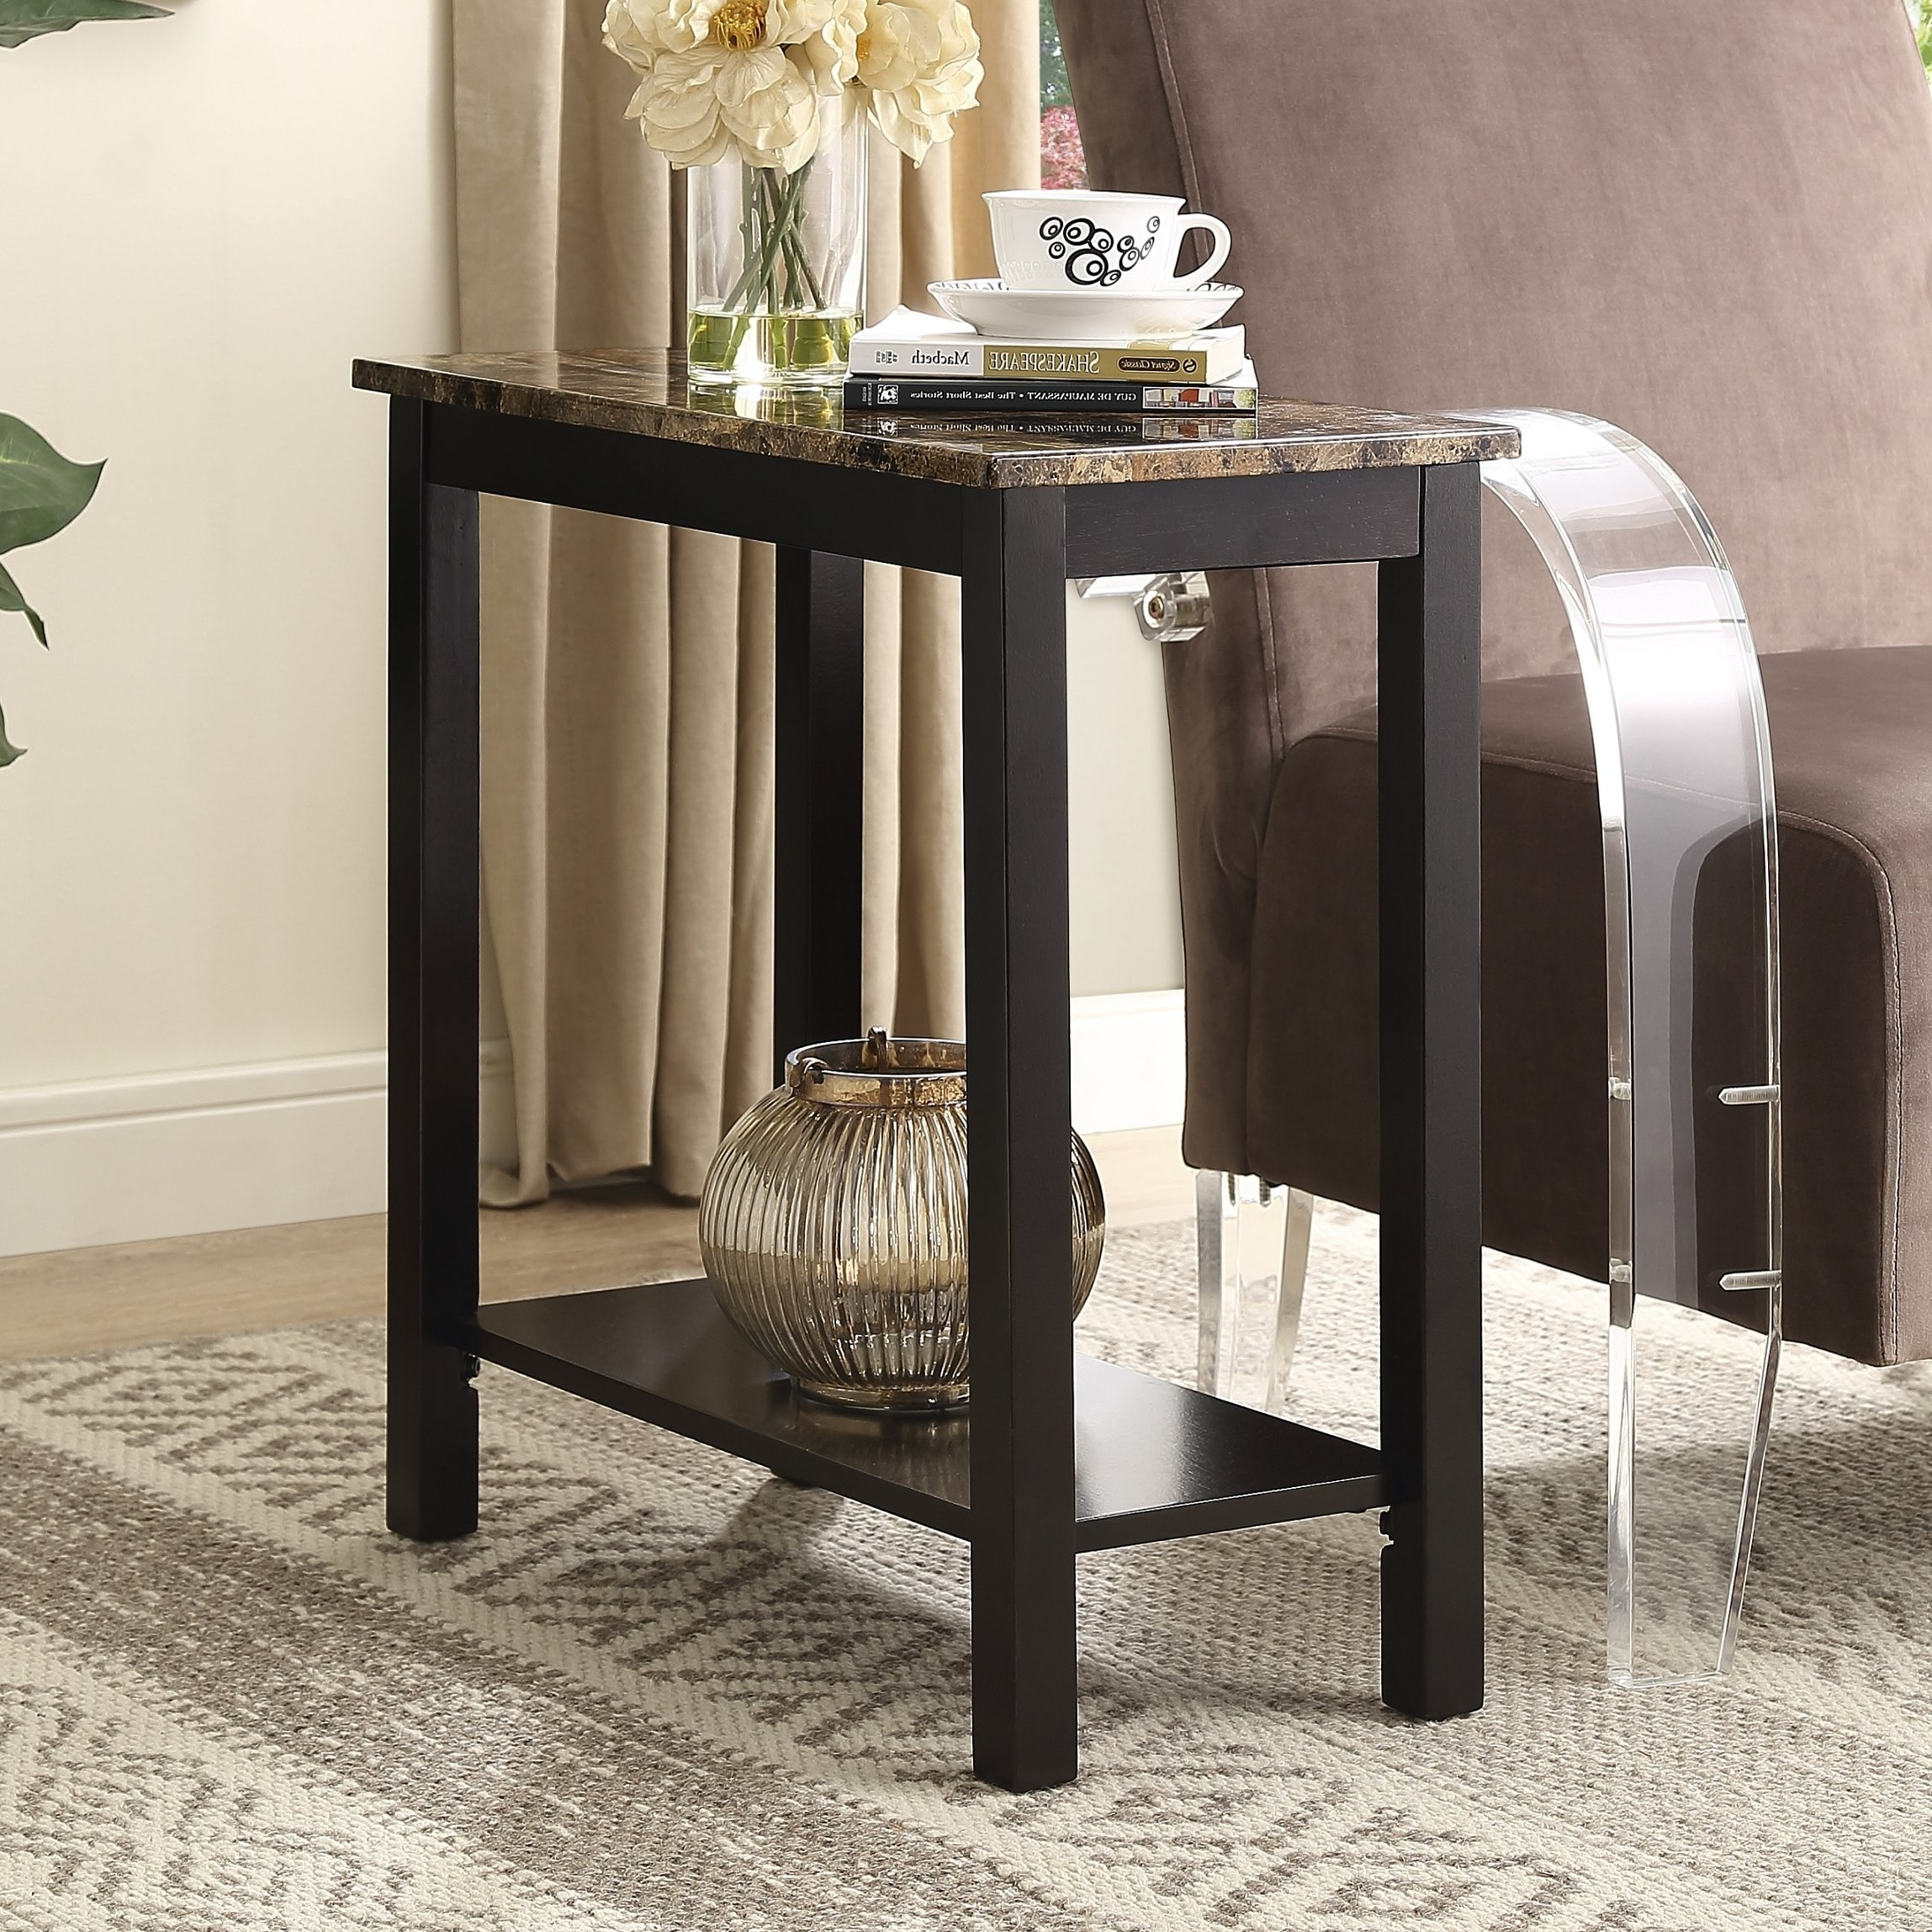 Wayfair Regarding Preferred Lassen Square Lift Top Cocktail Tables (View 20 of 20)